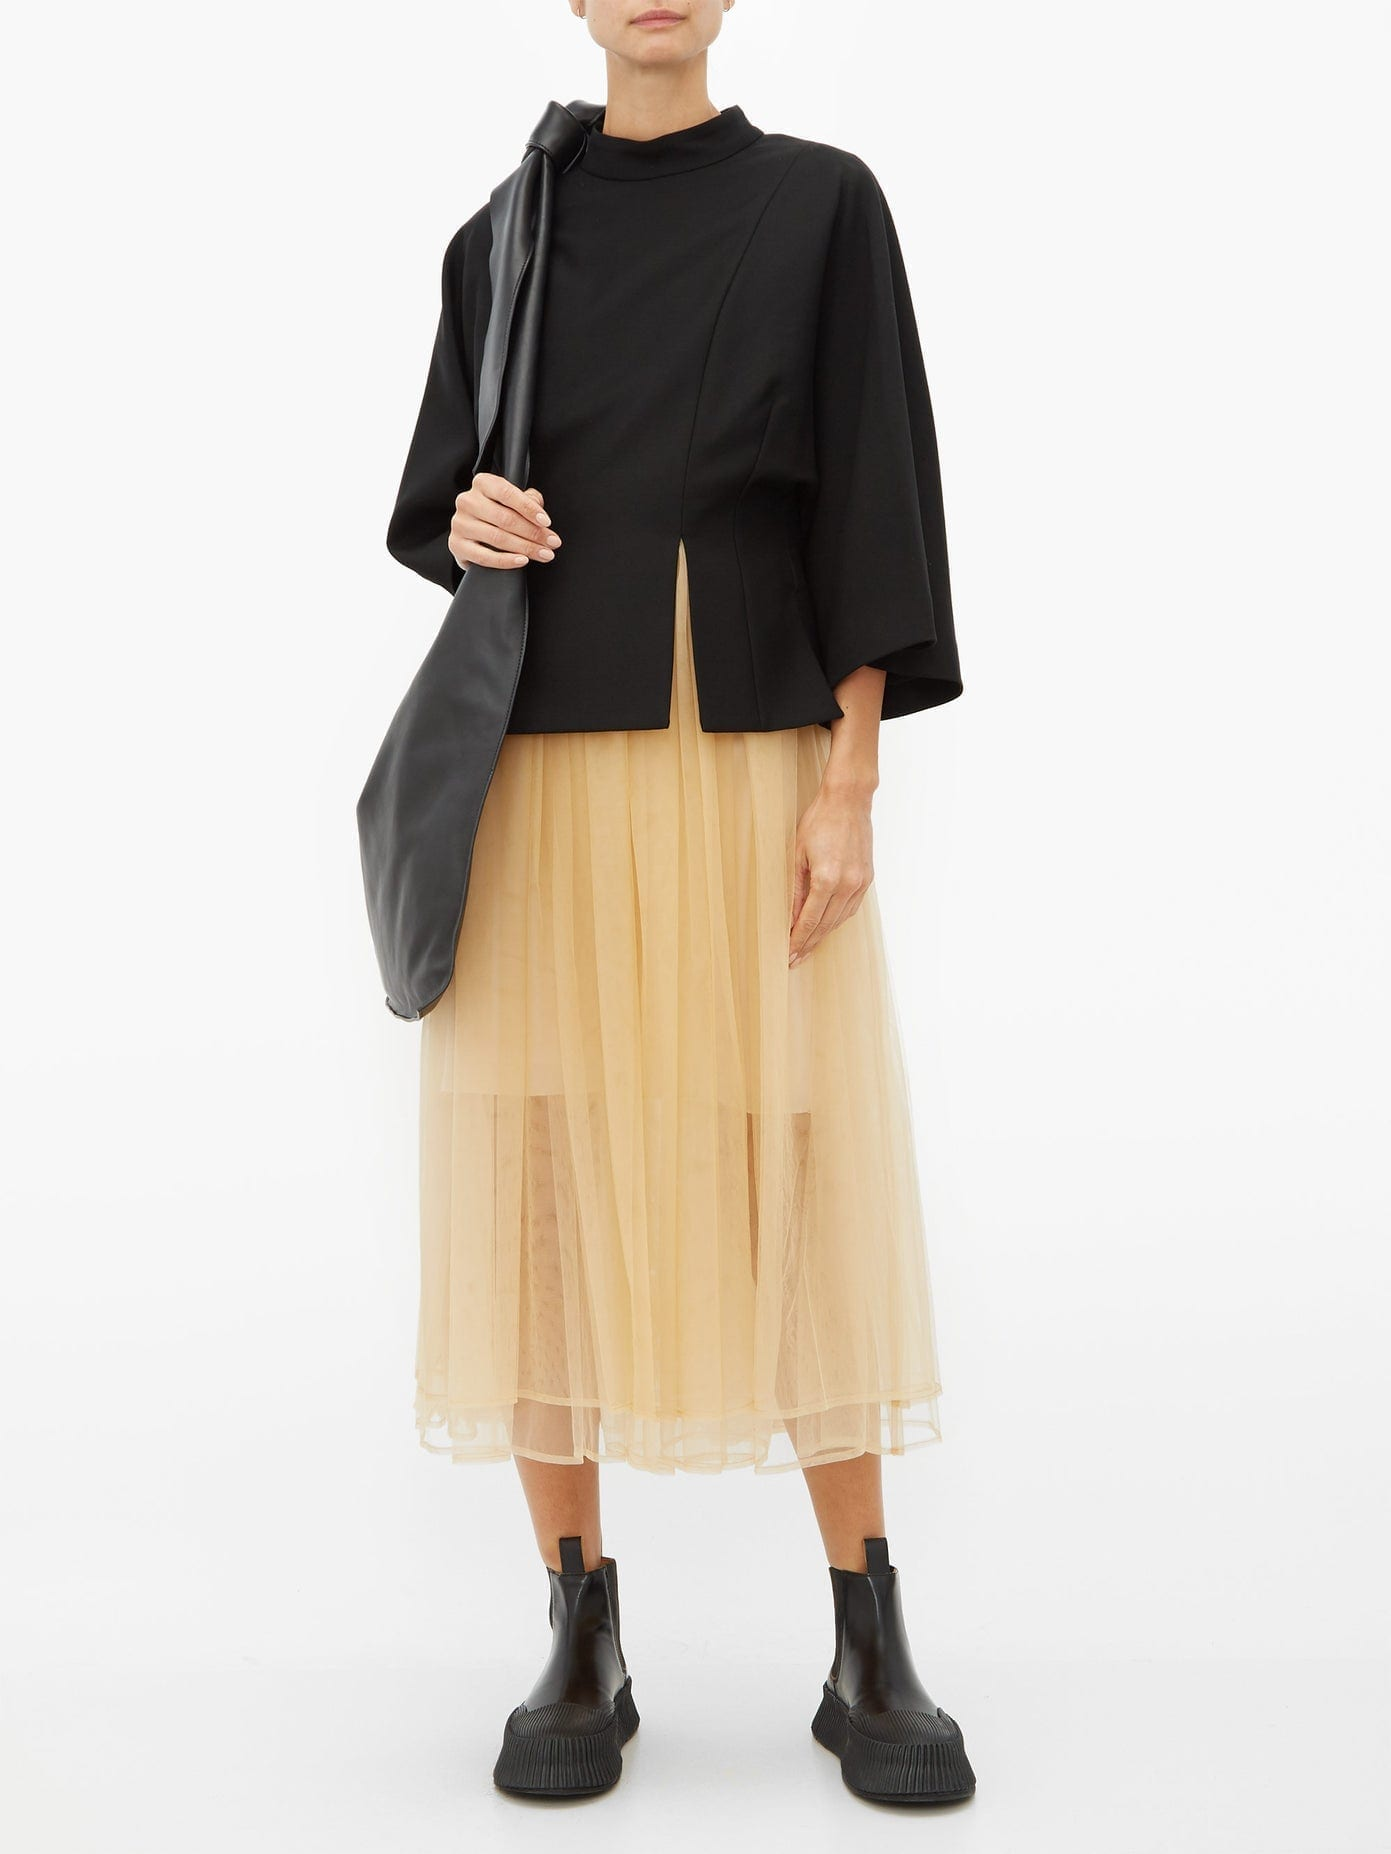 NOIR KEI NINOMIYA Layered Gabardine And Tulle Midi Dress